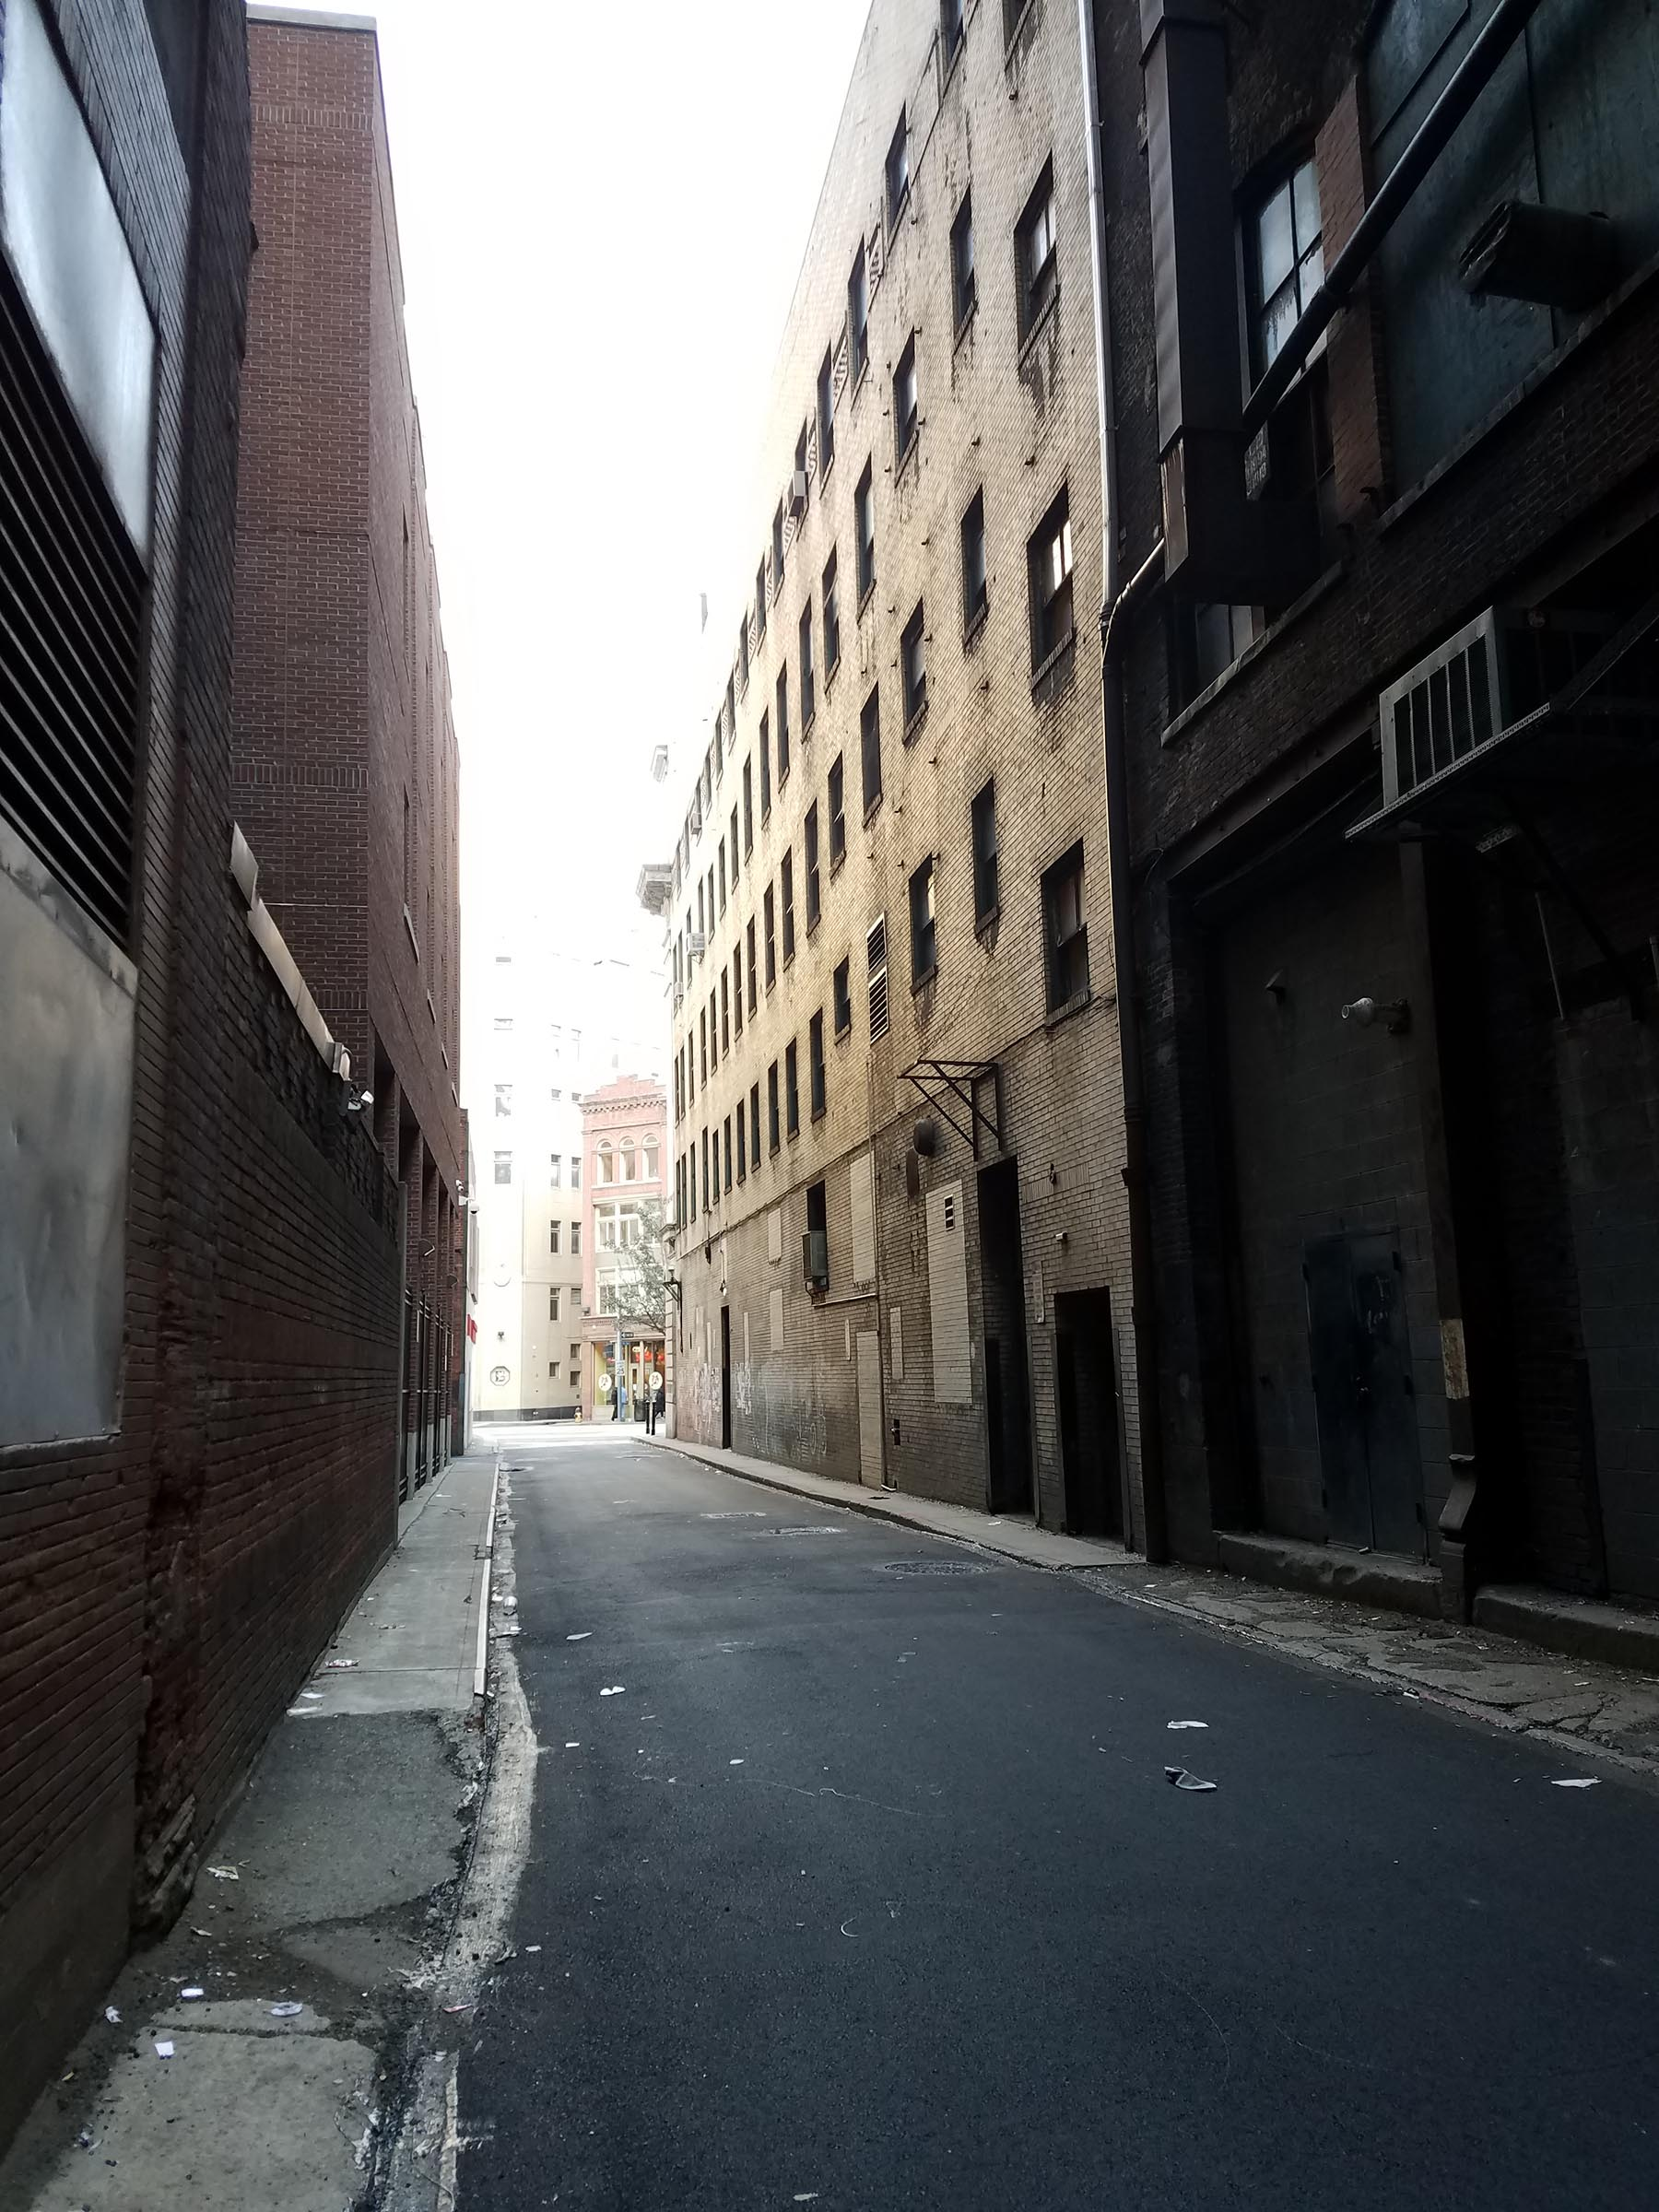 Daytime photo looking down a darkened alley between two five story buildings. The alley ends in about 500 feet where it connects to a brightly lit street.